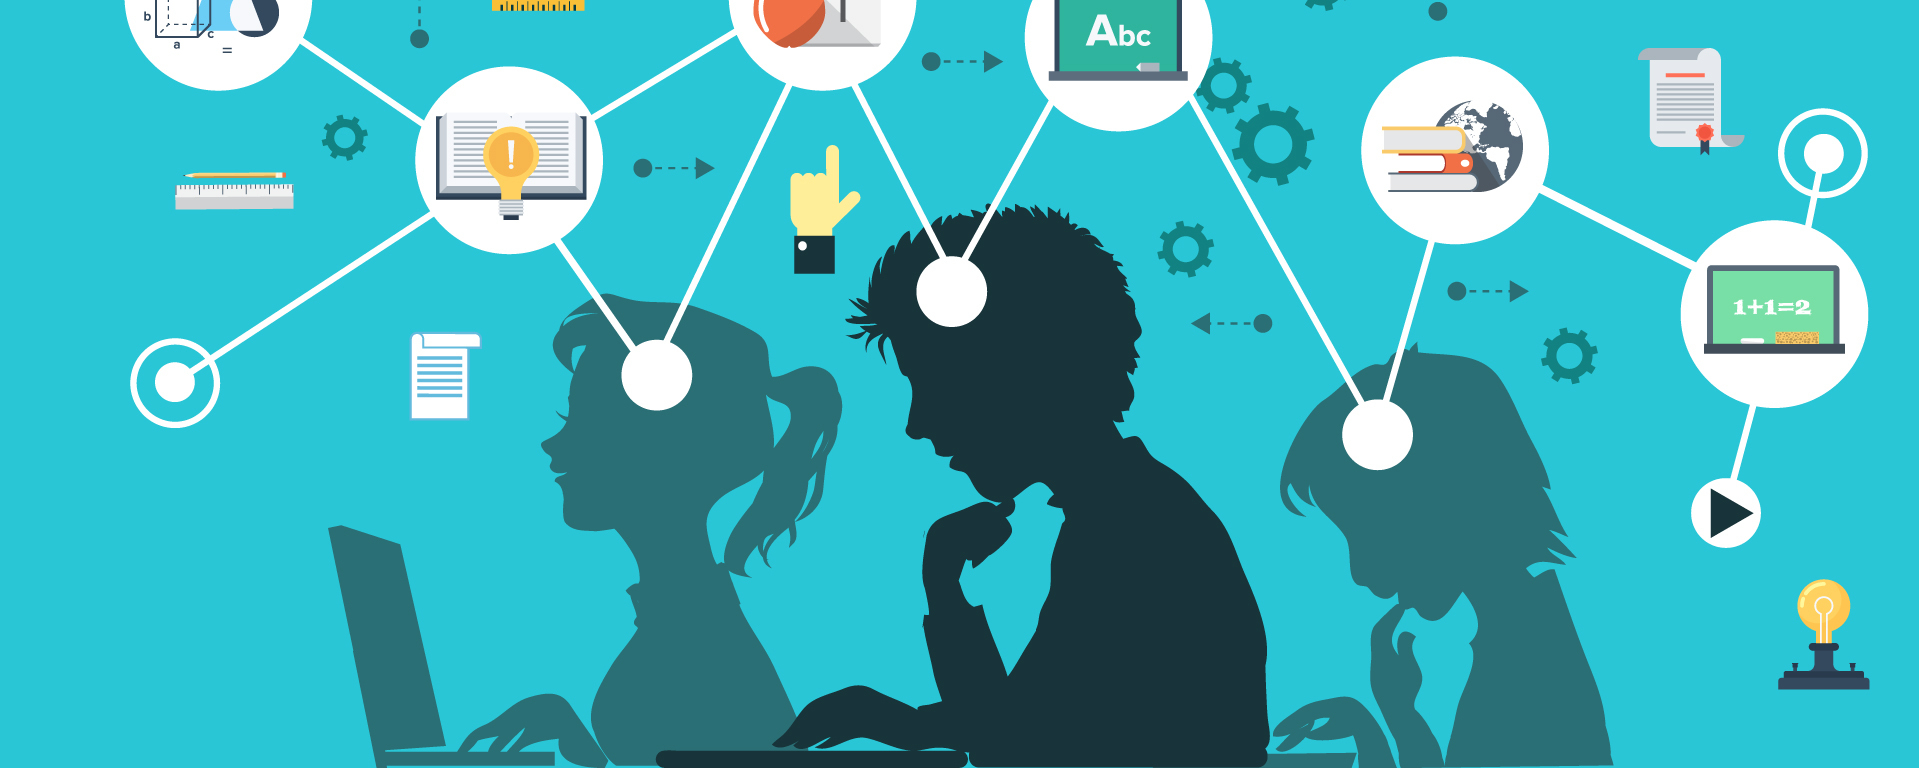 Online Testing Highlights Need For Digital Literacy